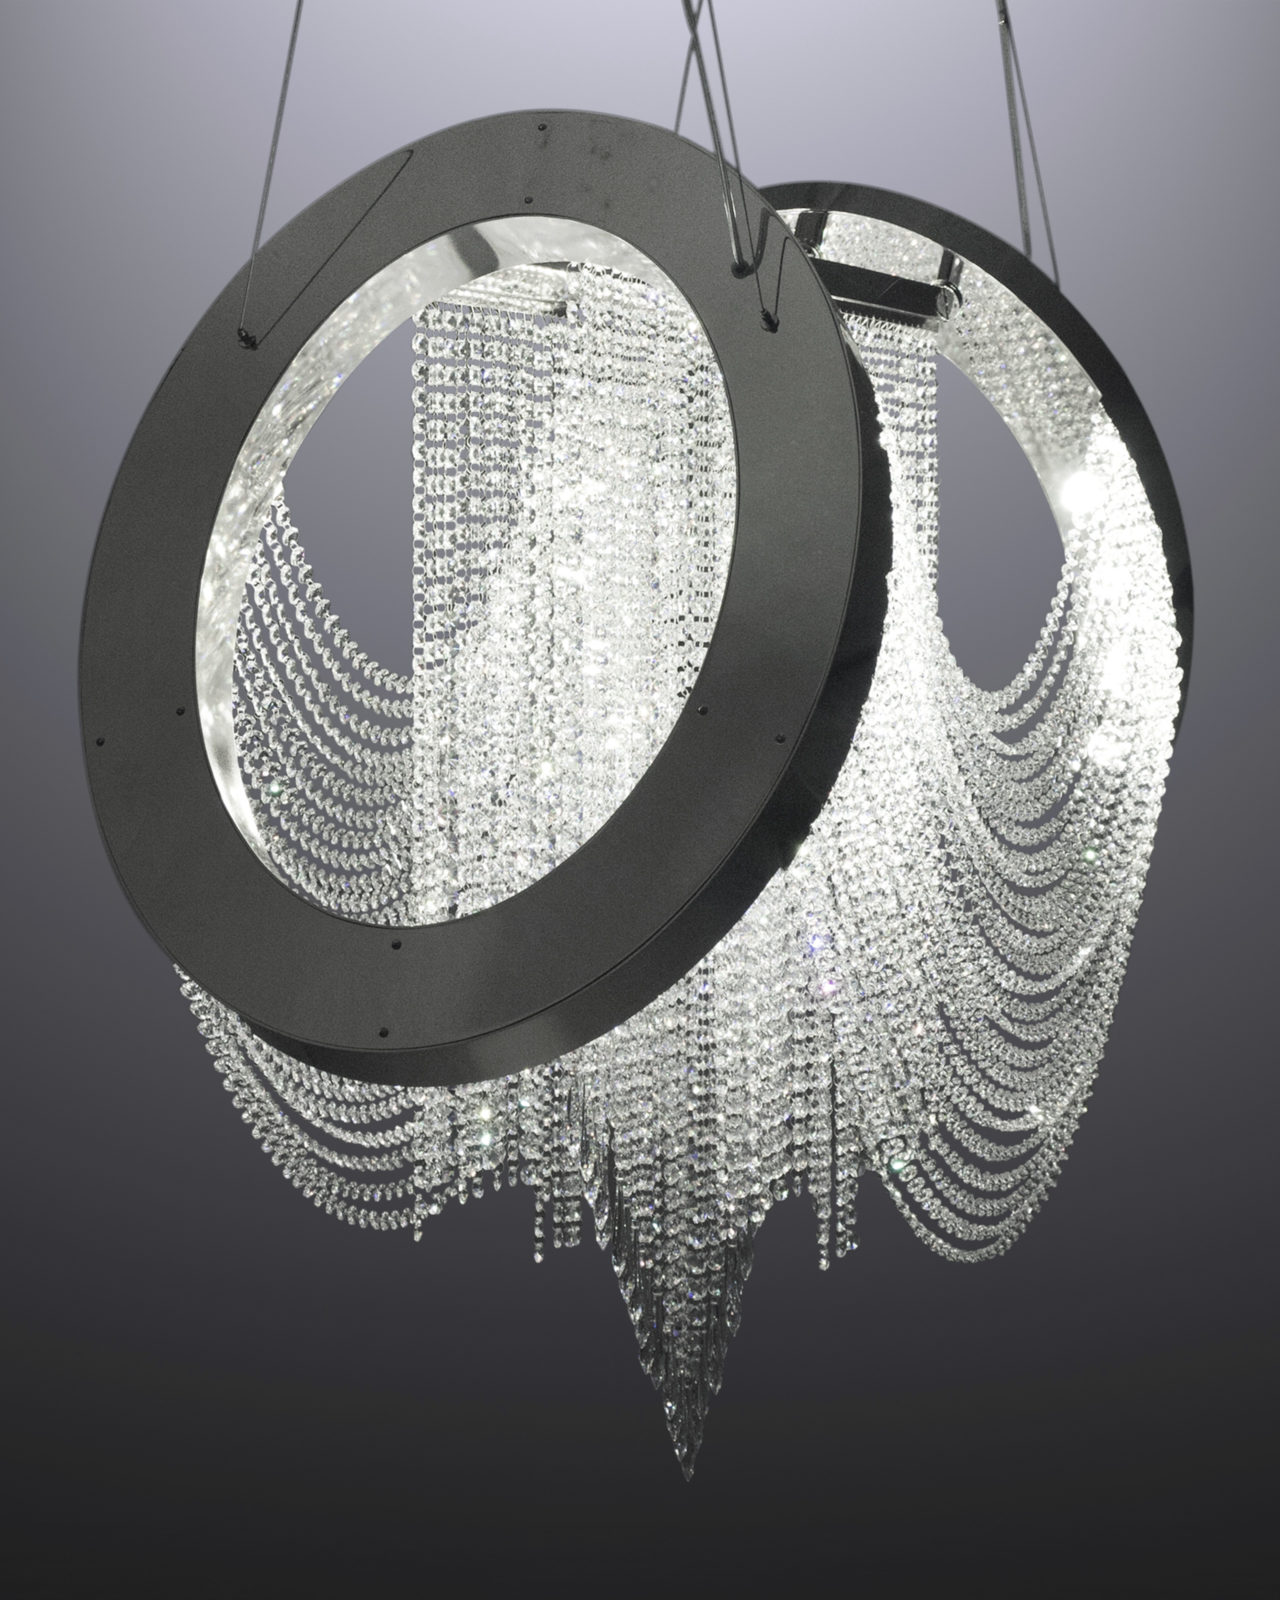 Greenapple Anelar Chandelier